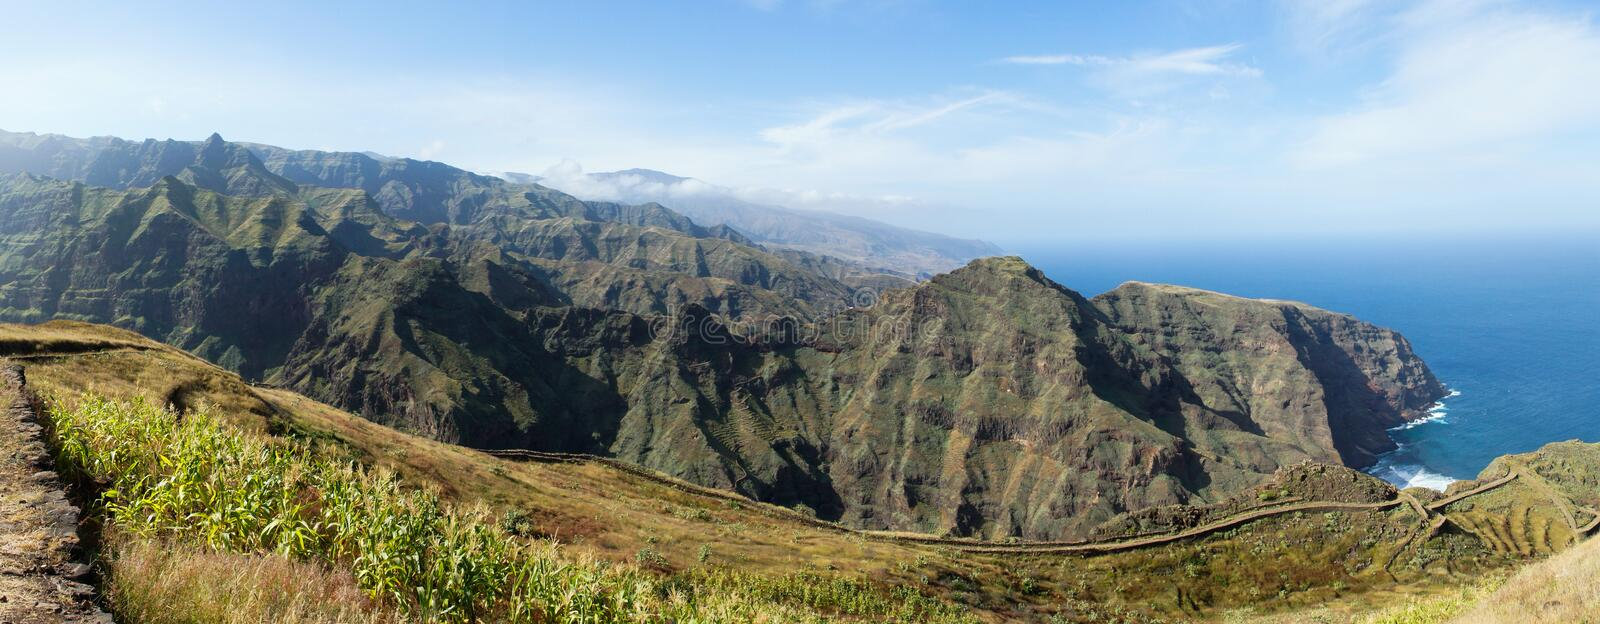 Download Cape Verde viewpoint stock image. Image of viewpoint - 32677717